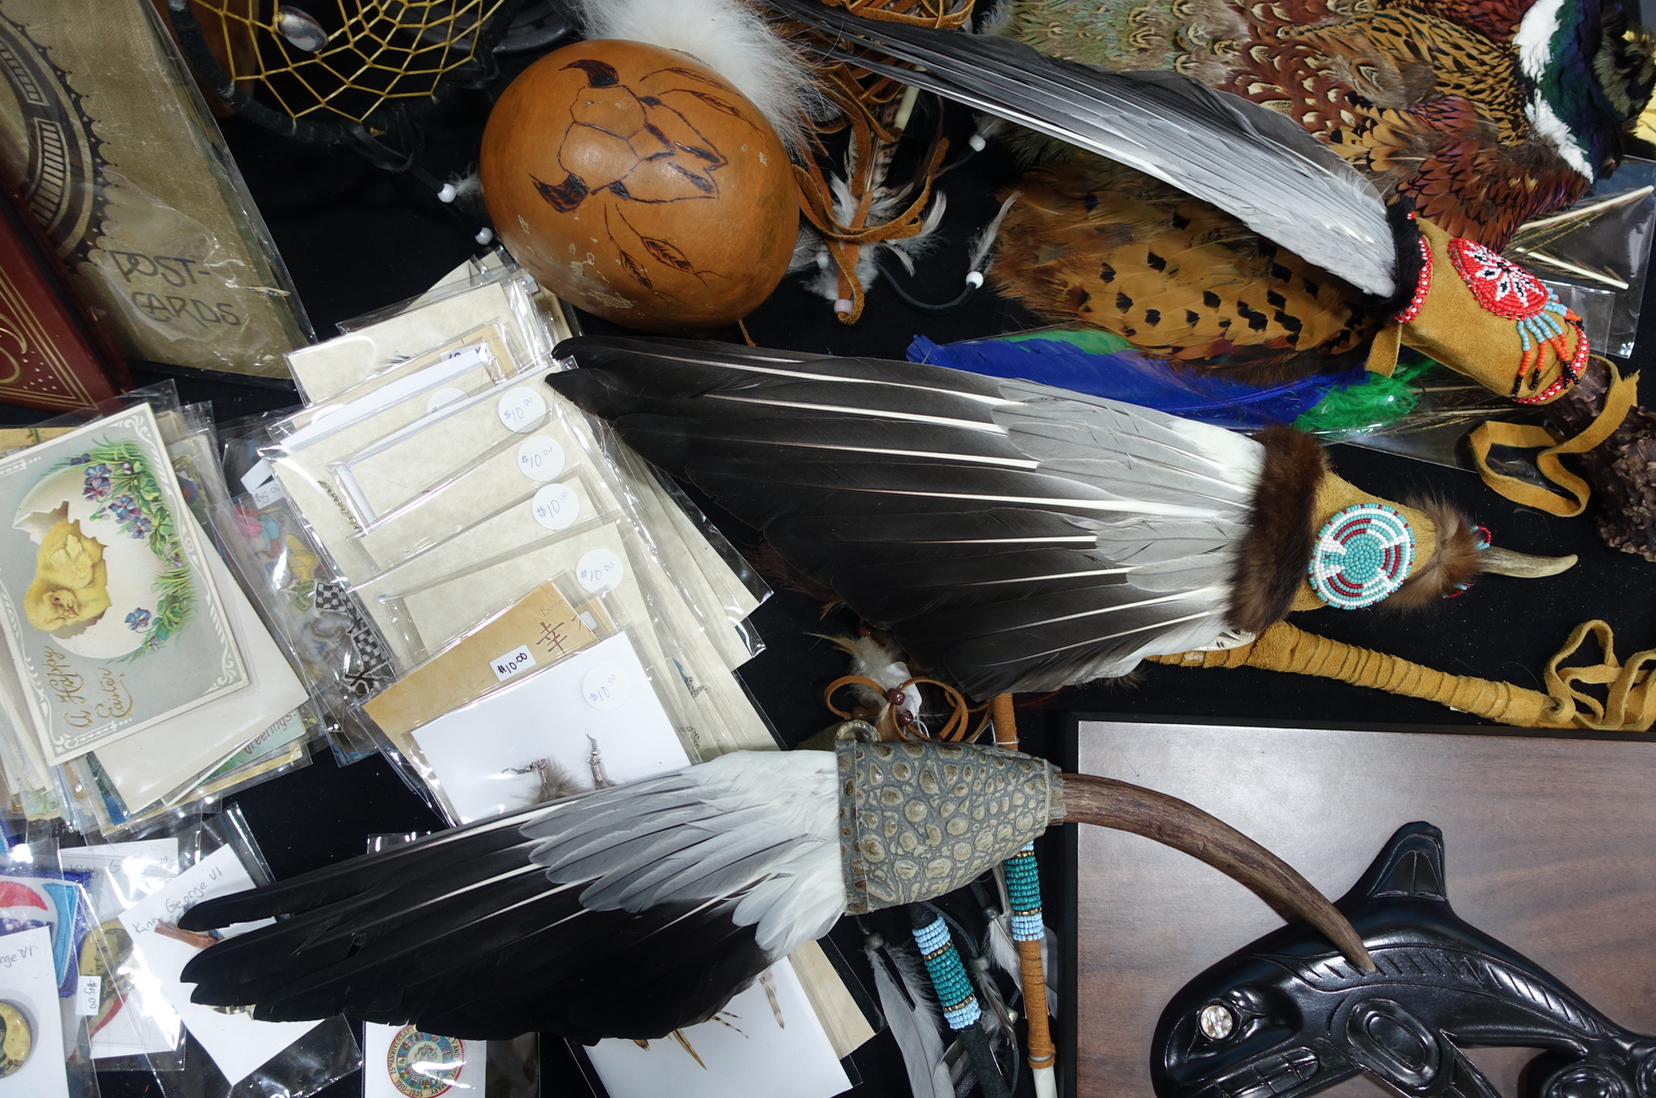 A flea market collage.